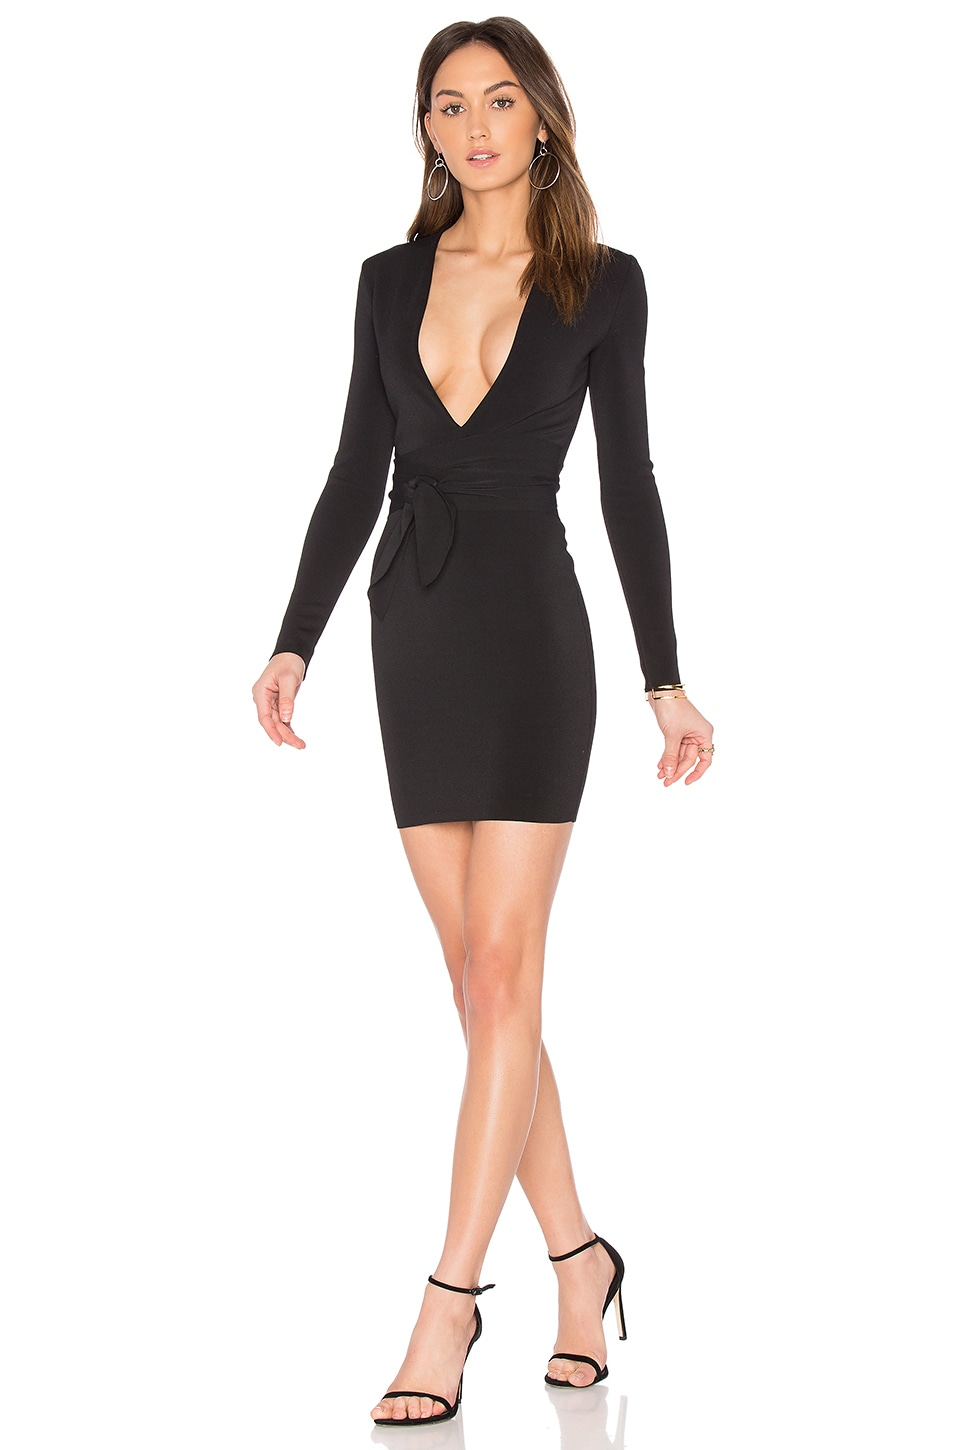 BEC&BRIDGE India Rosa Long Sleeve Tie Dress in Black